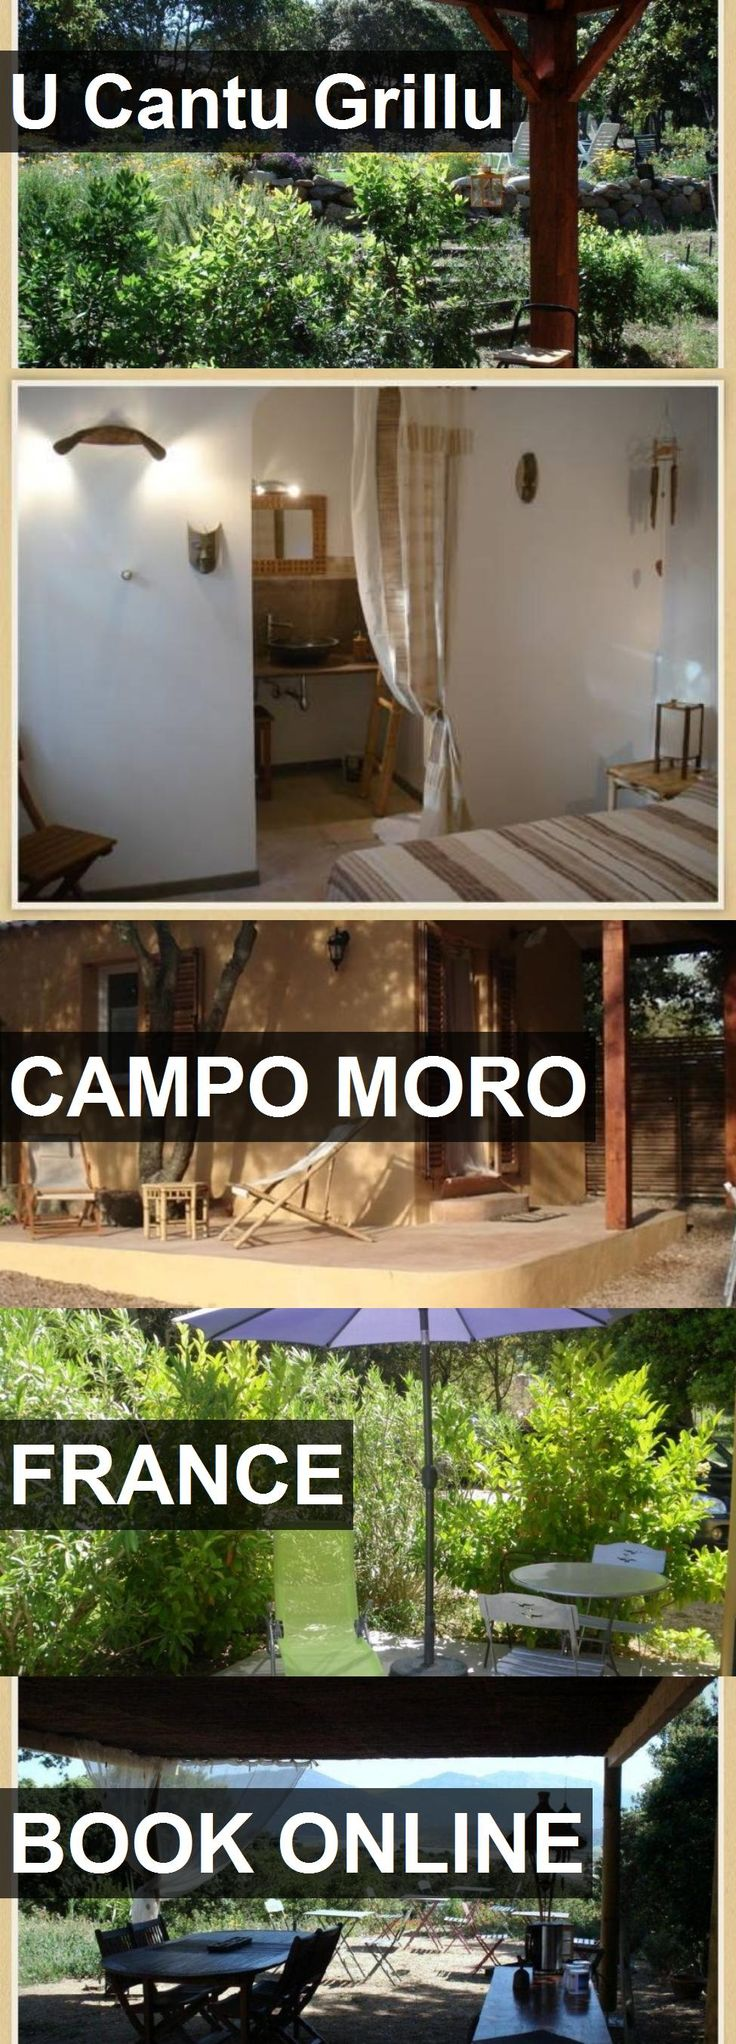 Hotel U Cantu Grillu in Campo Moro, France. For more information, photos, reviews and best prices please follow the link. #France #CampoMoro #travel #vacation #hotel